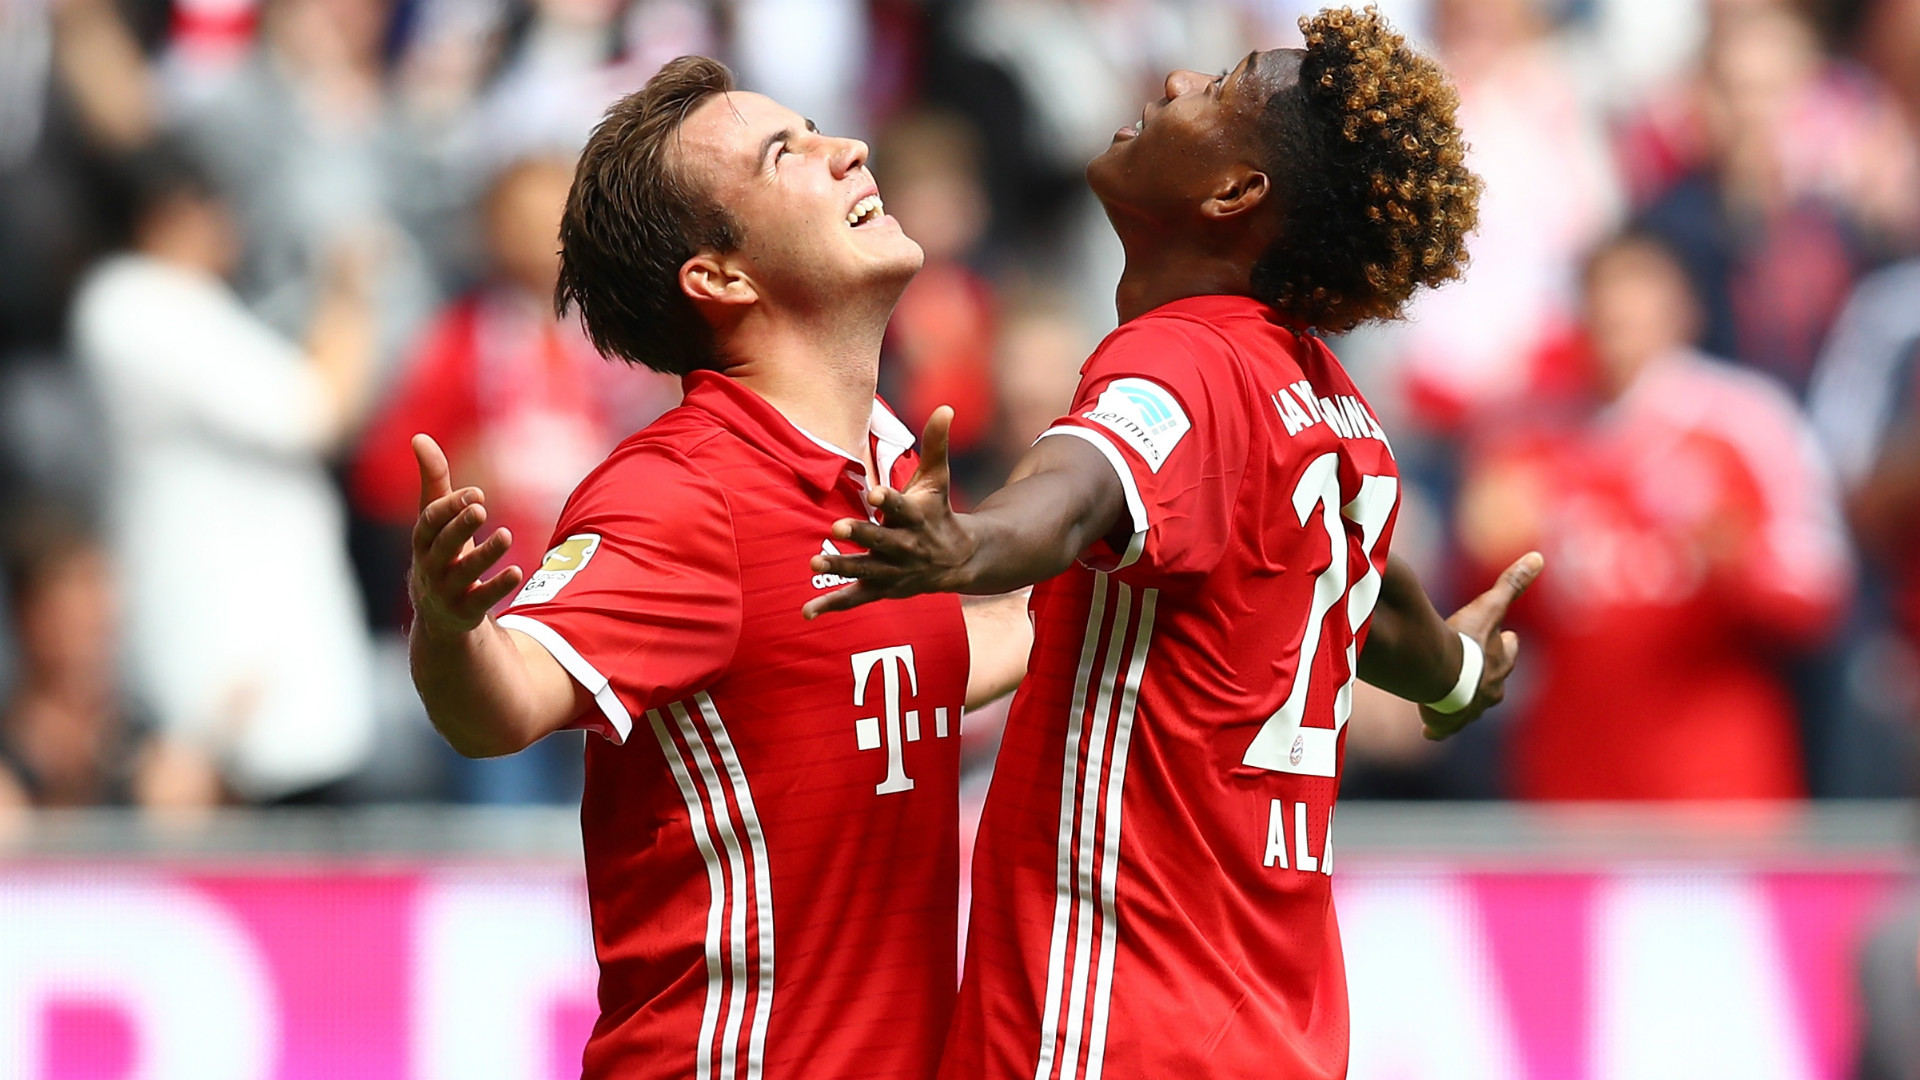 David Alaba defends much maligned Mario Gotze in wake of ongoing